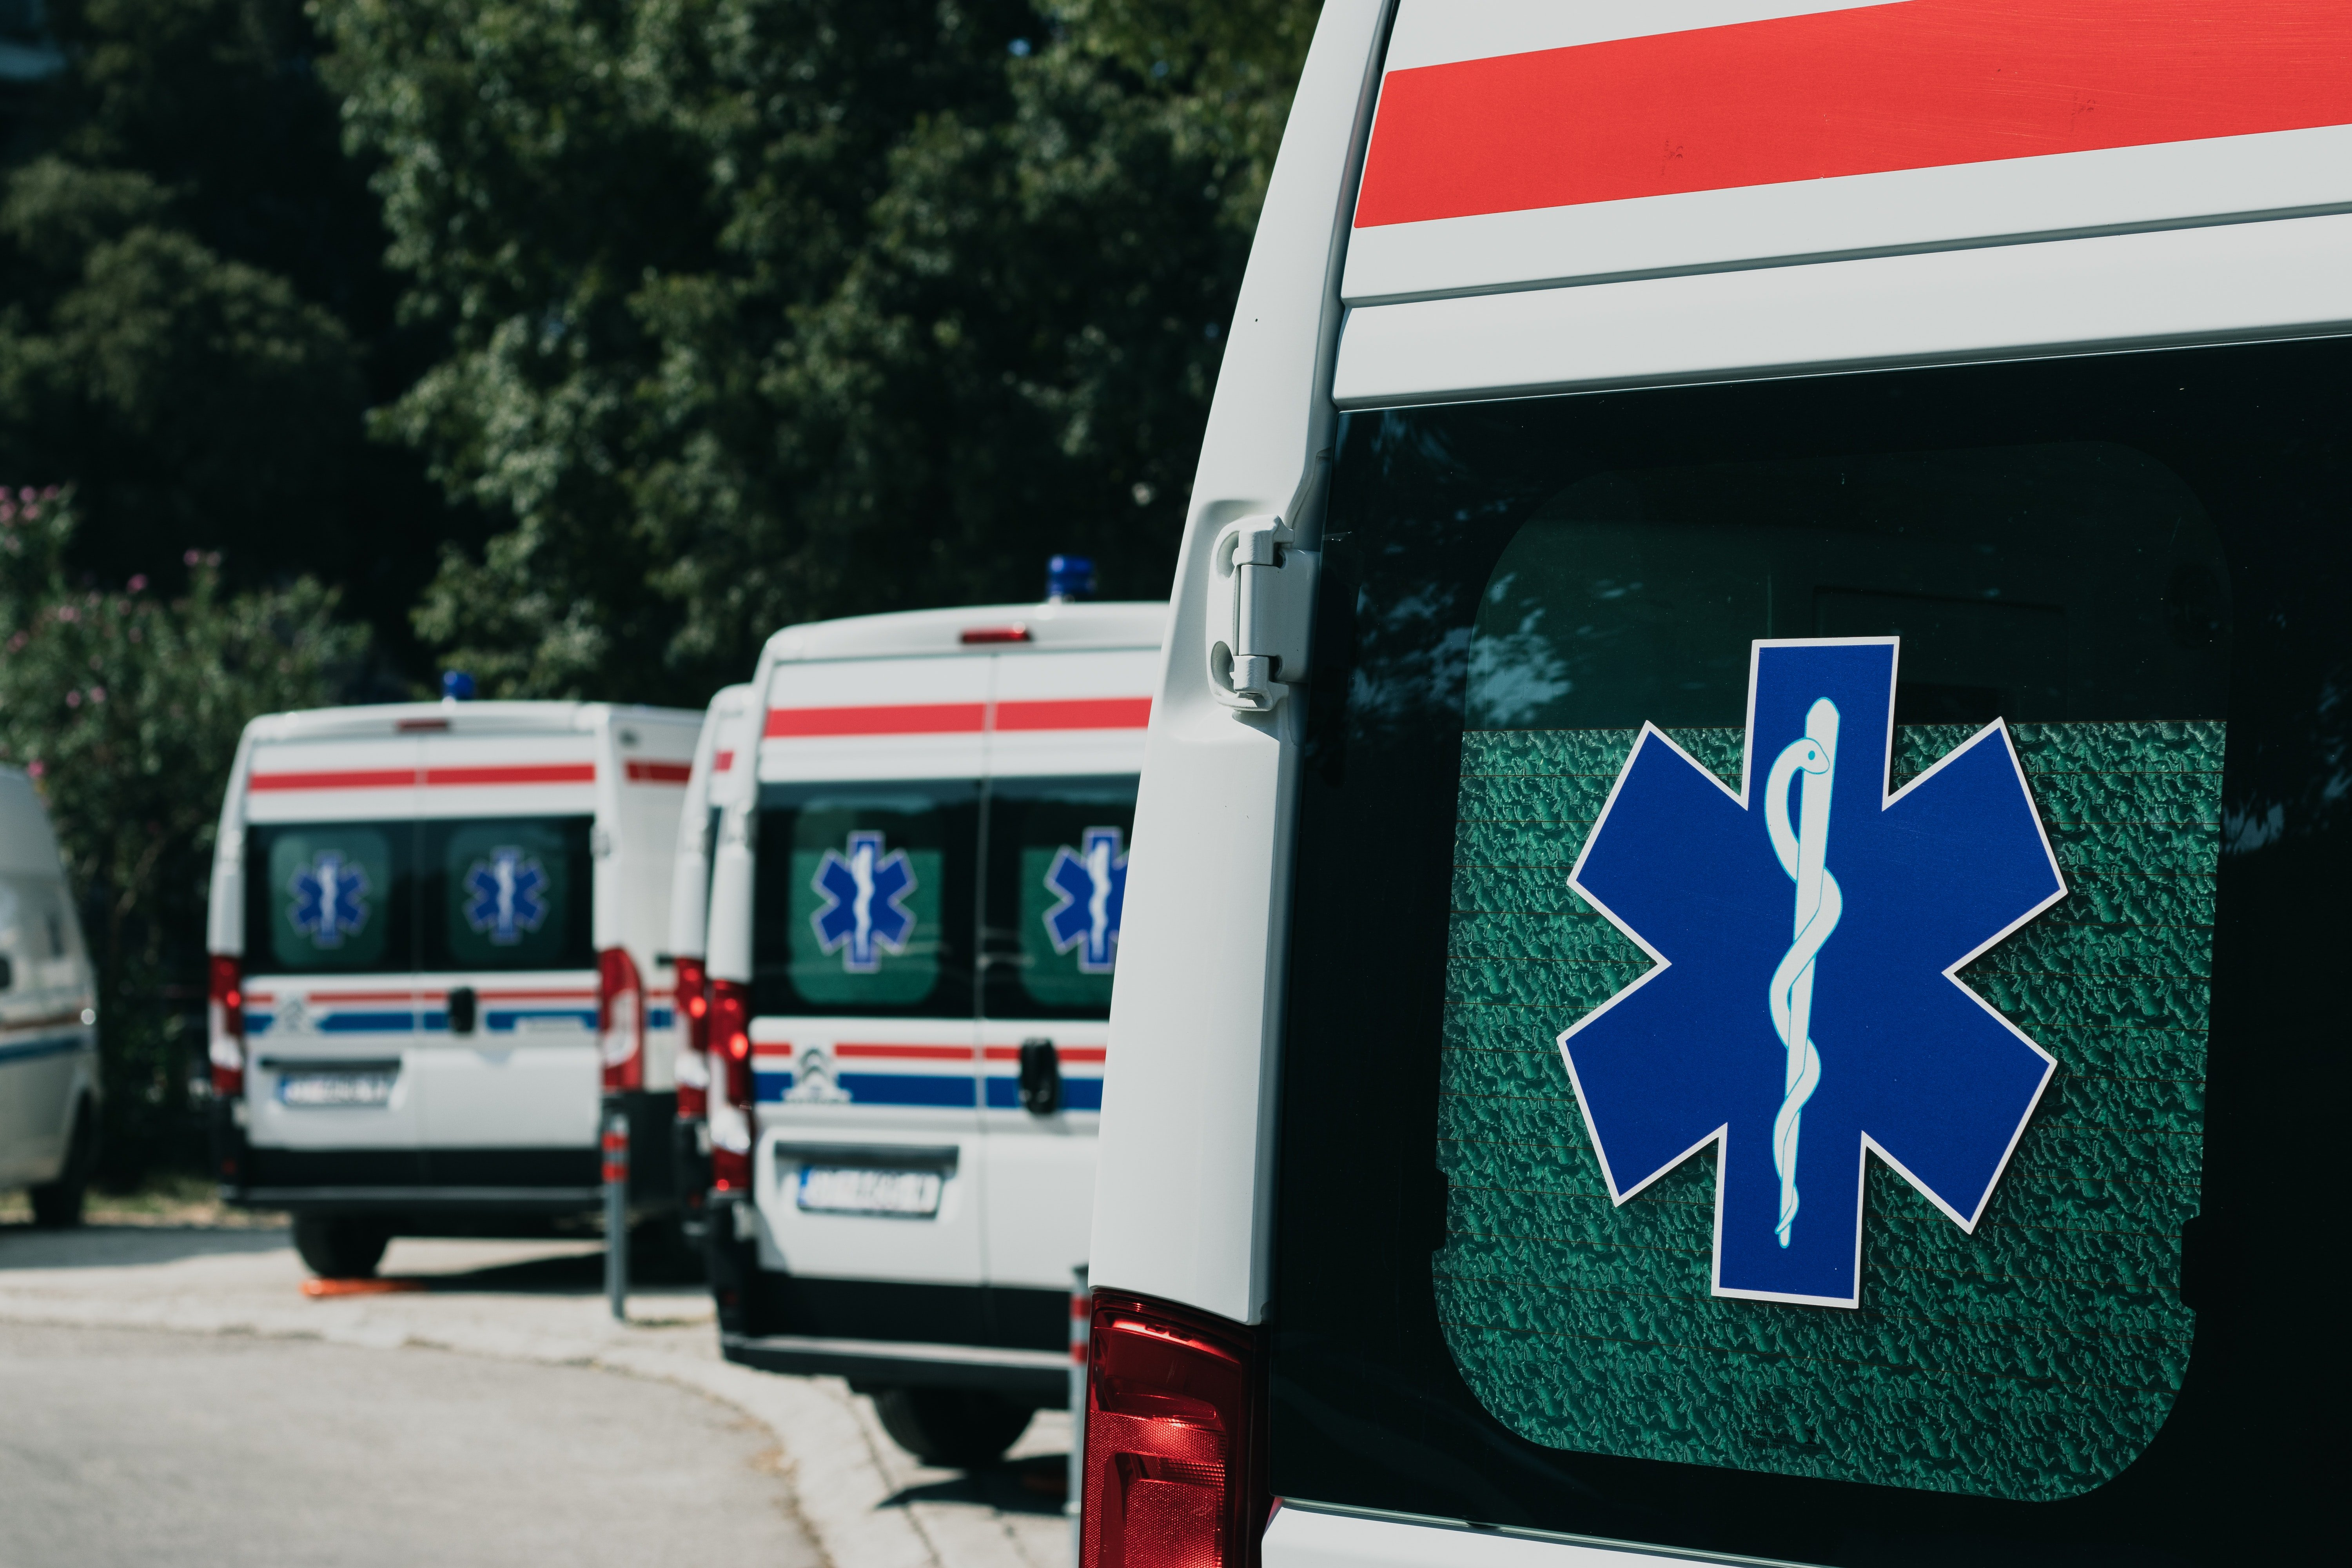 Matt snatched Stephany's phone and called the ambulance   Photo: Pexels